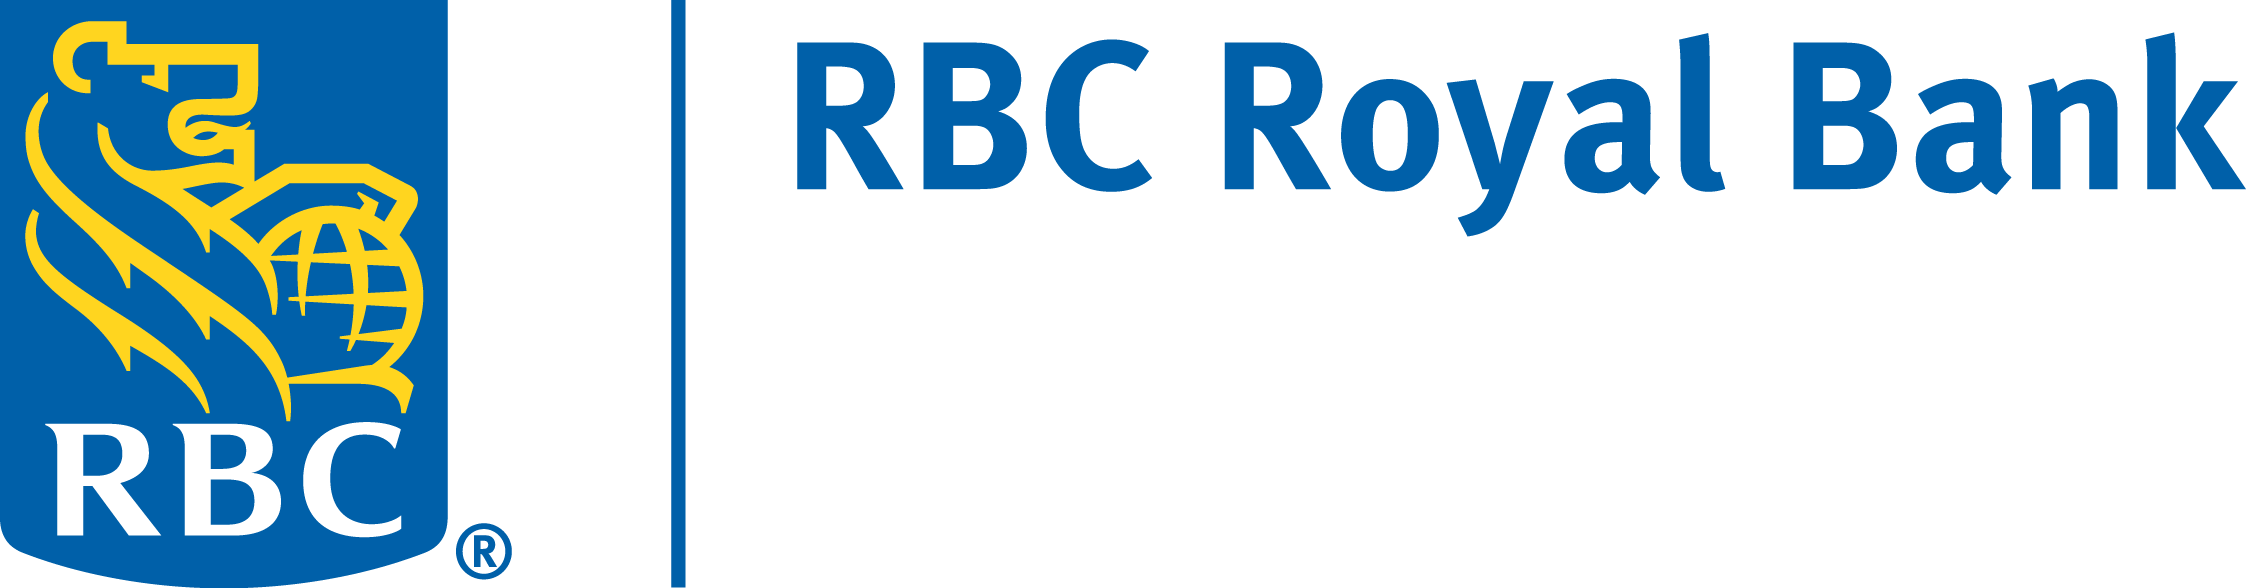 Image result for Career Launch With the Royal Bank of Canada